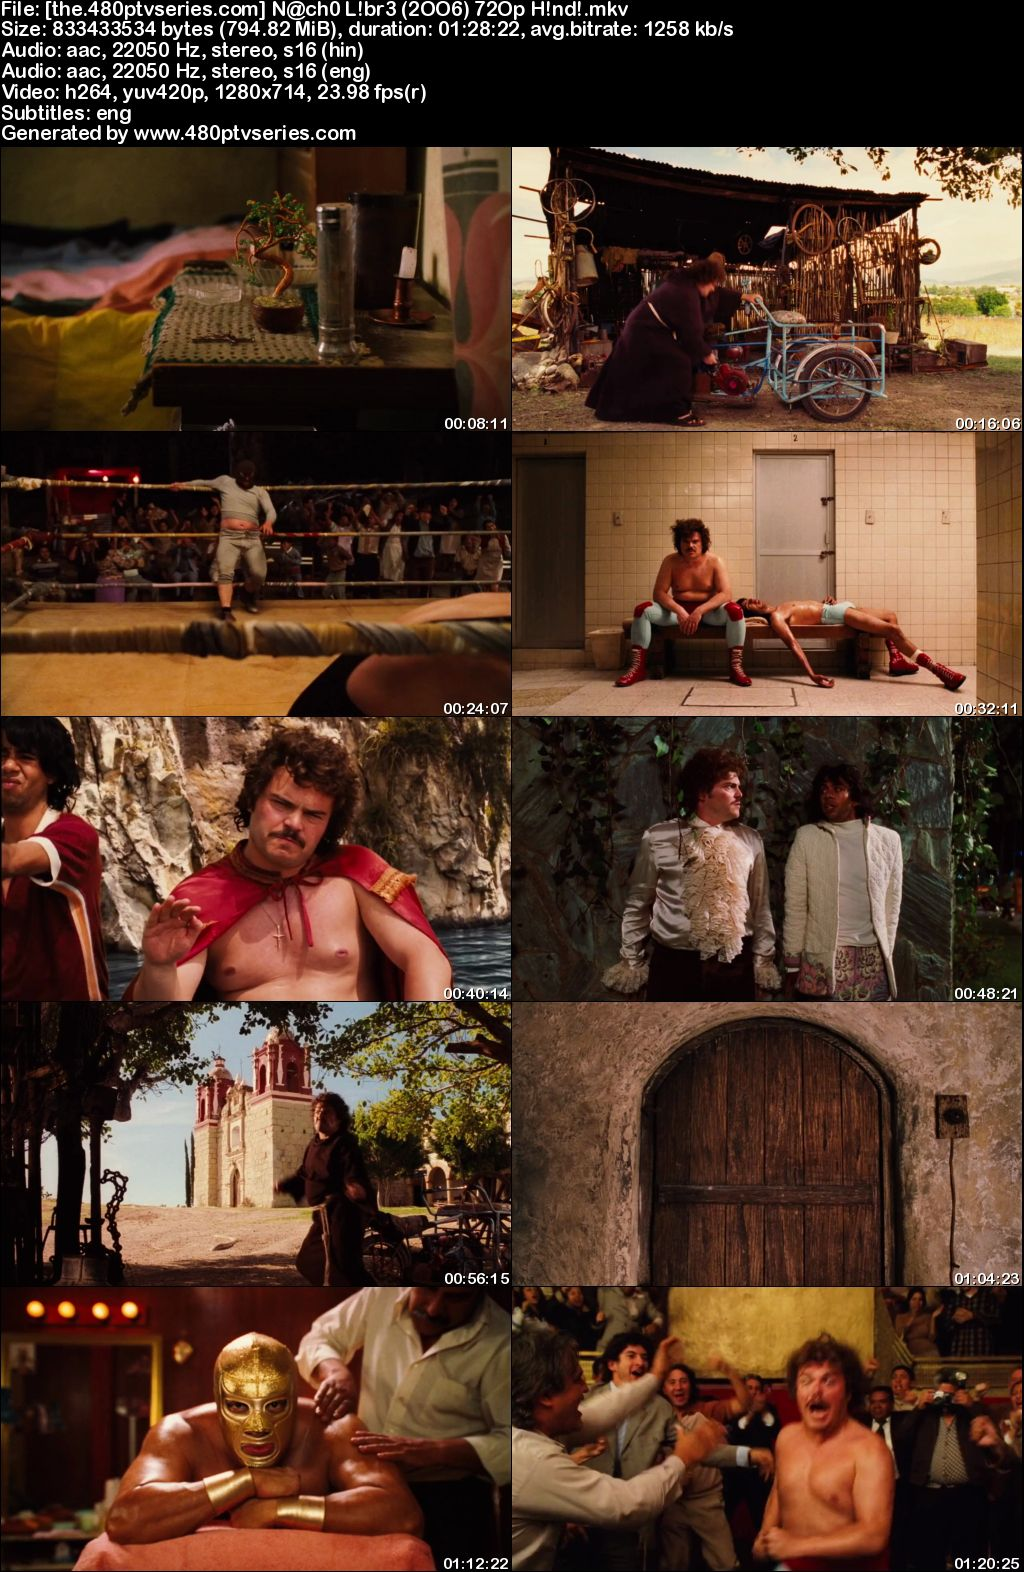 Watch Online Free Nacho Libre (2006) Full Hindi Dual Audio Movie Download 480p 720p Bluray